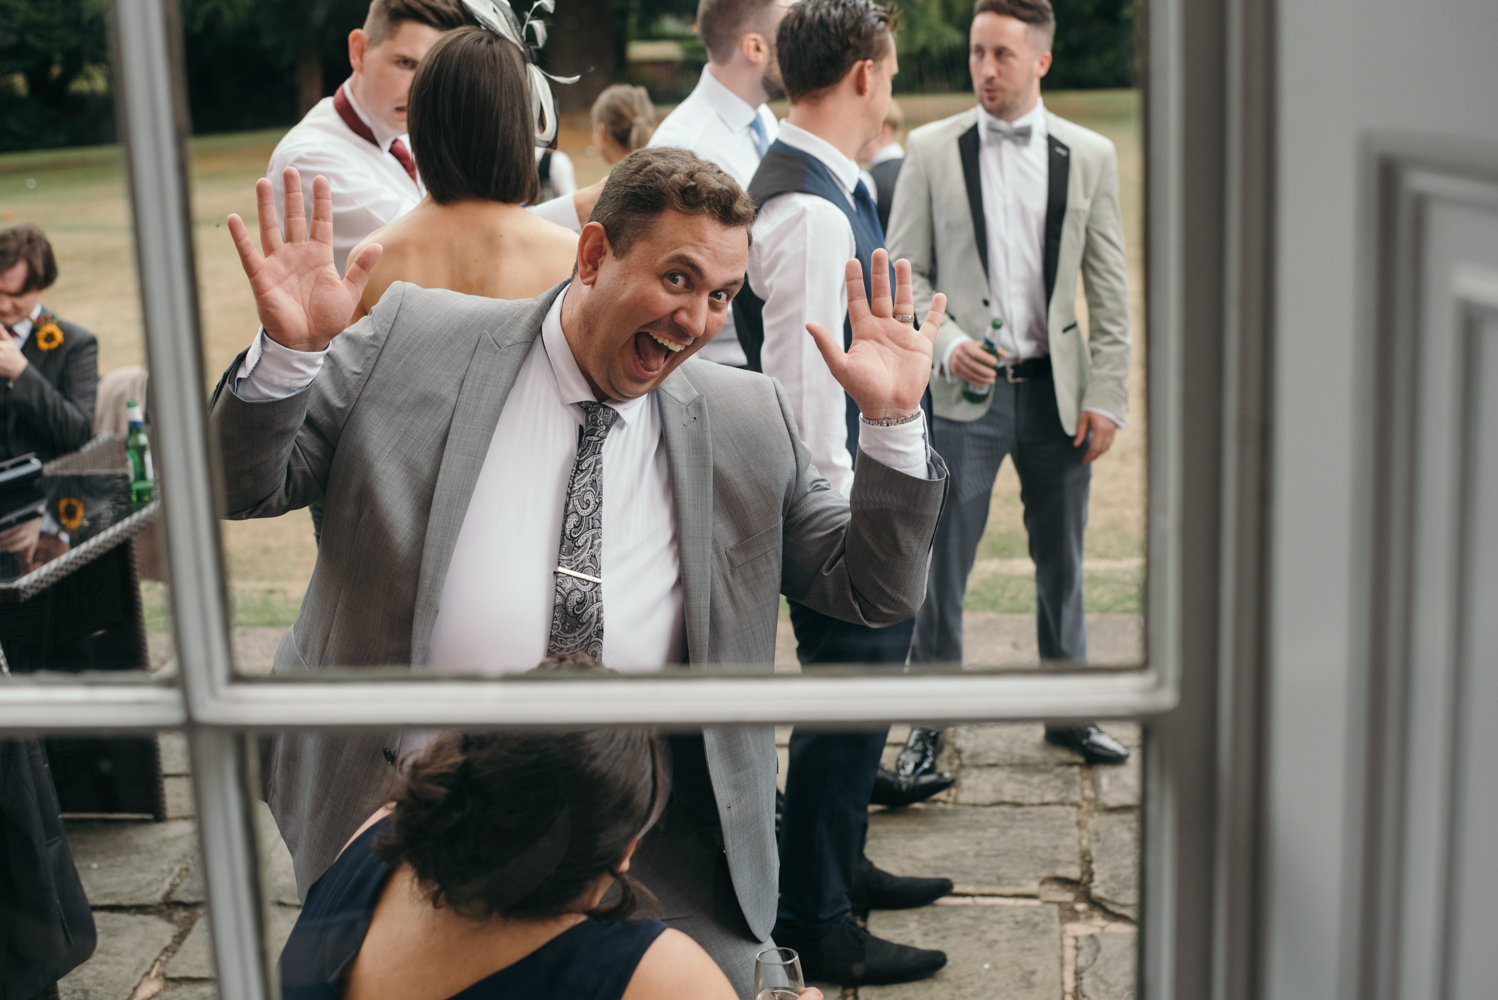 A male guest pulling a funny face during the drinks reception